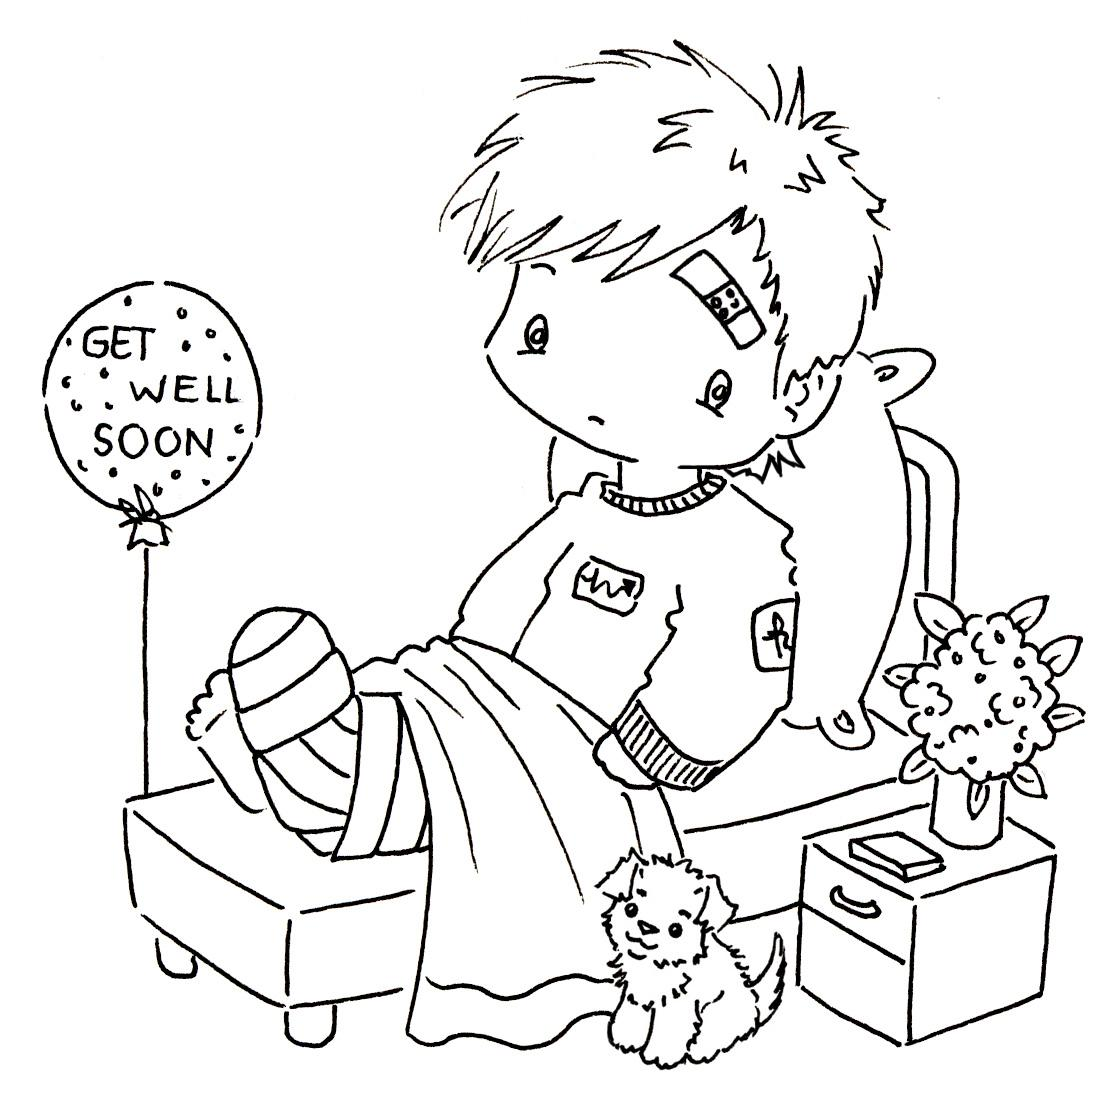 kids get well coloring pages - photo#20